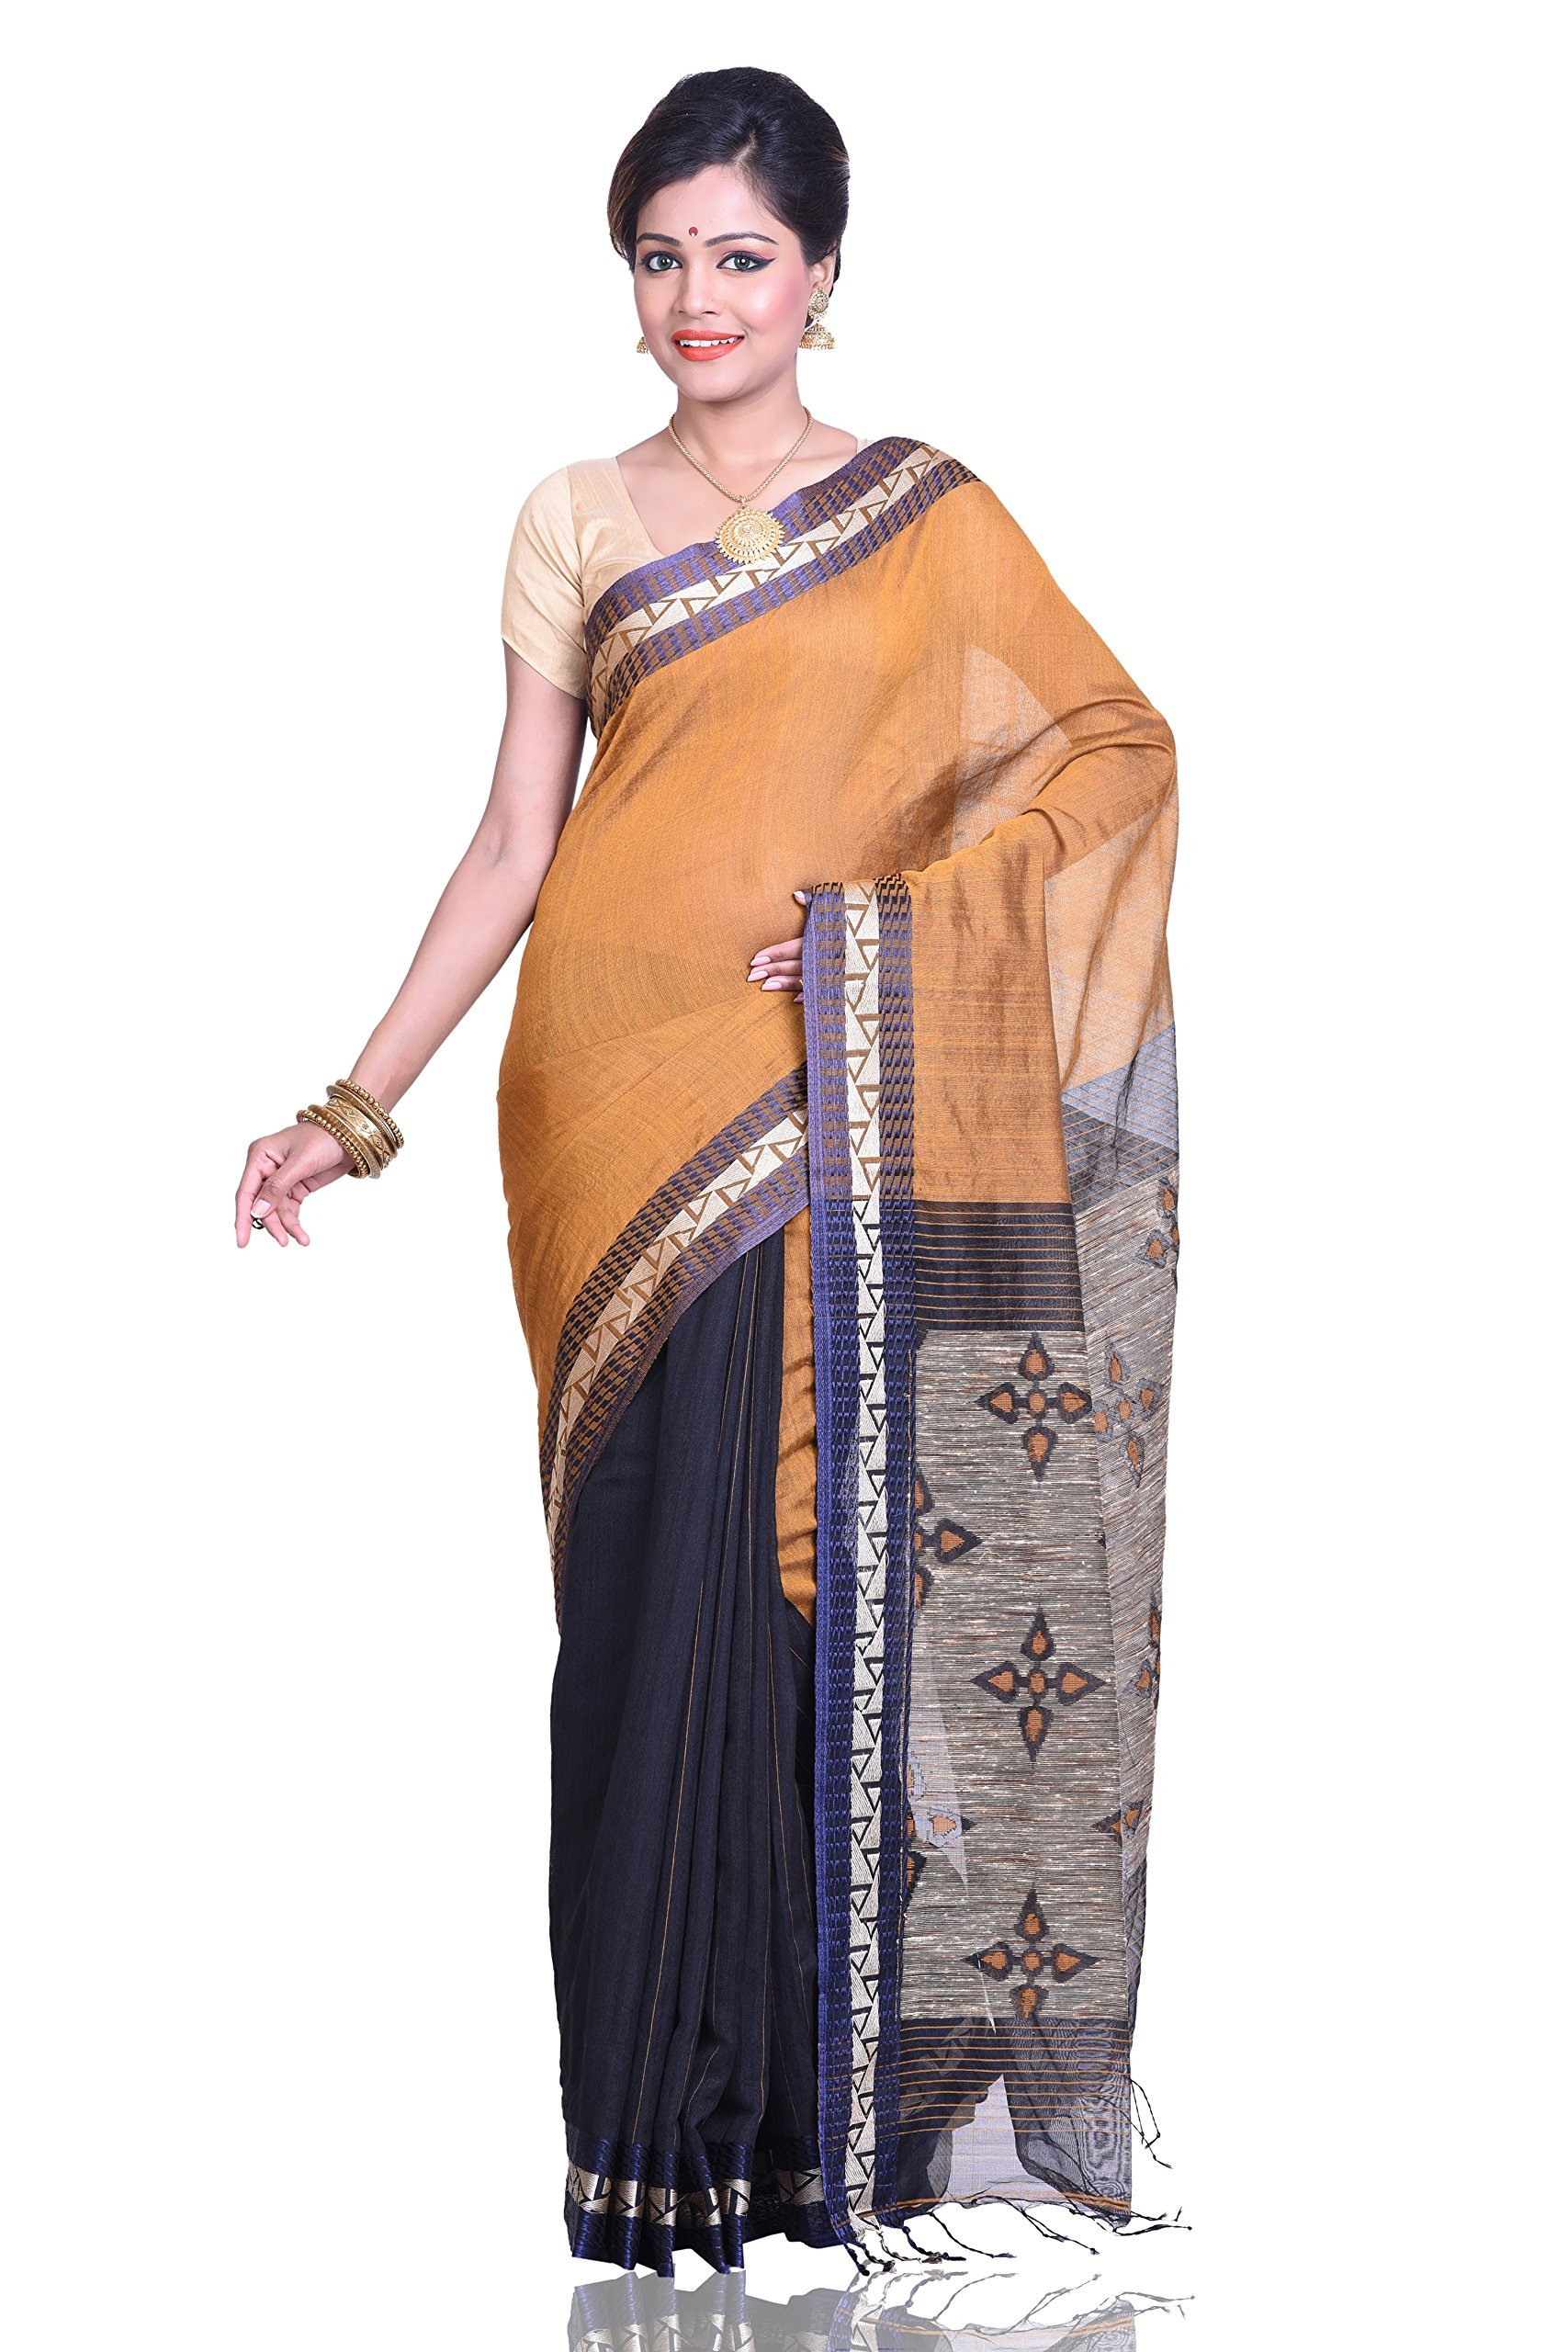 Bengal Handloom Saree Women's Cotton With Blouse Piece Free Size Gold